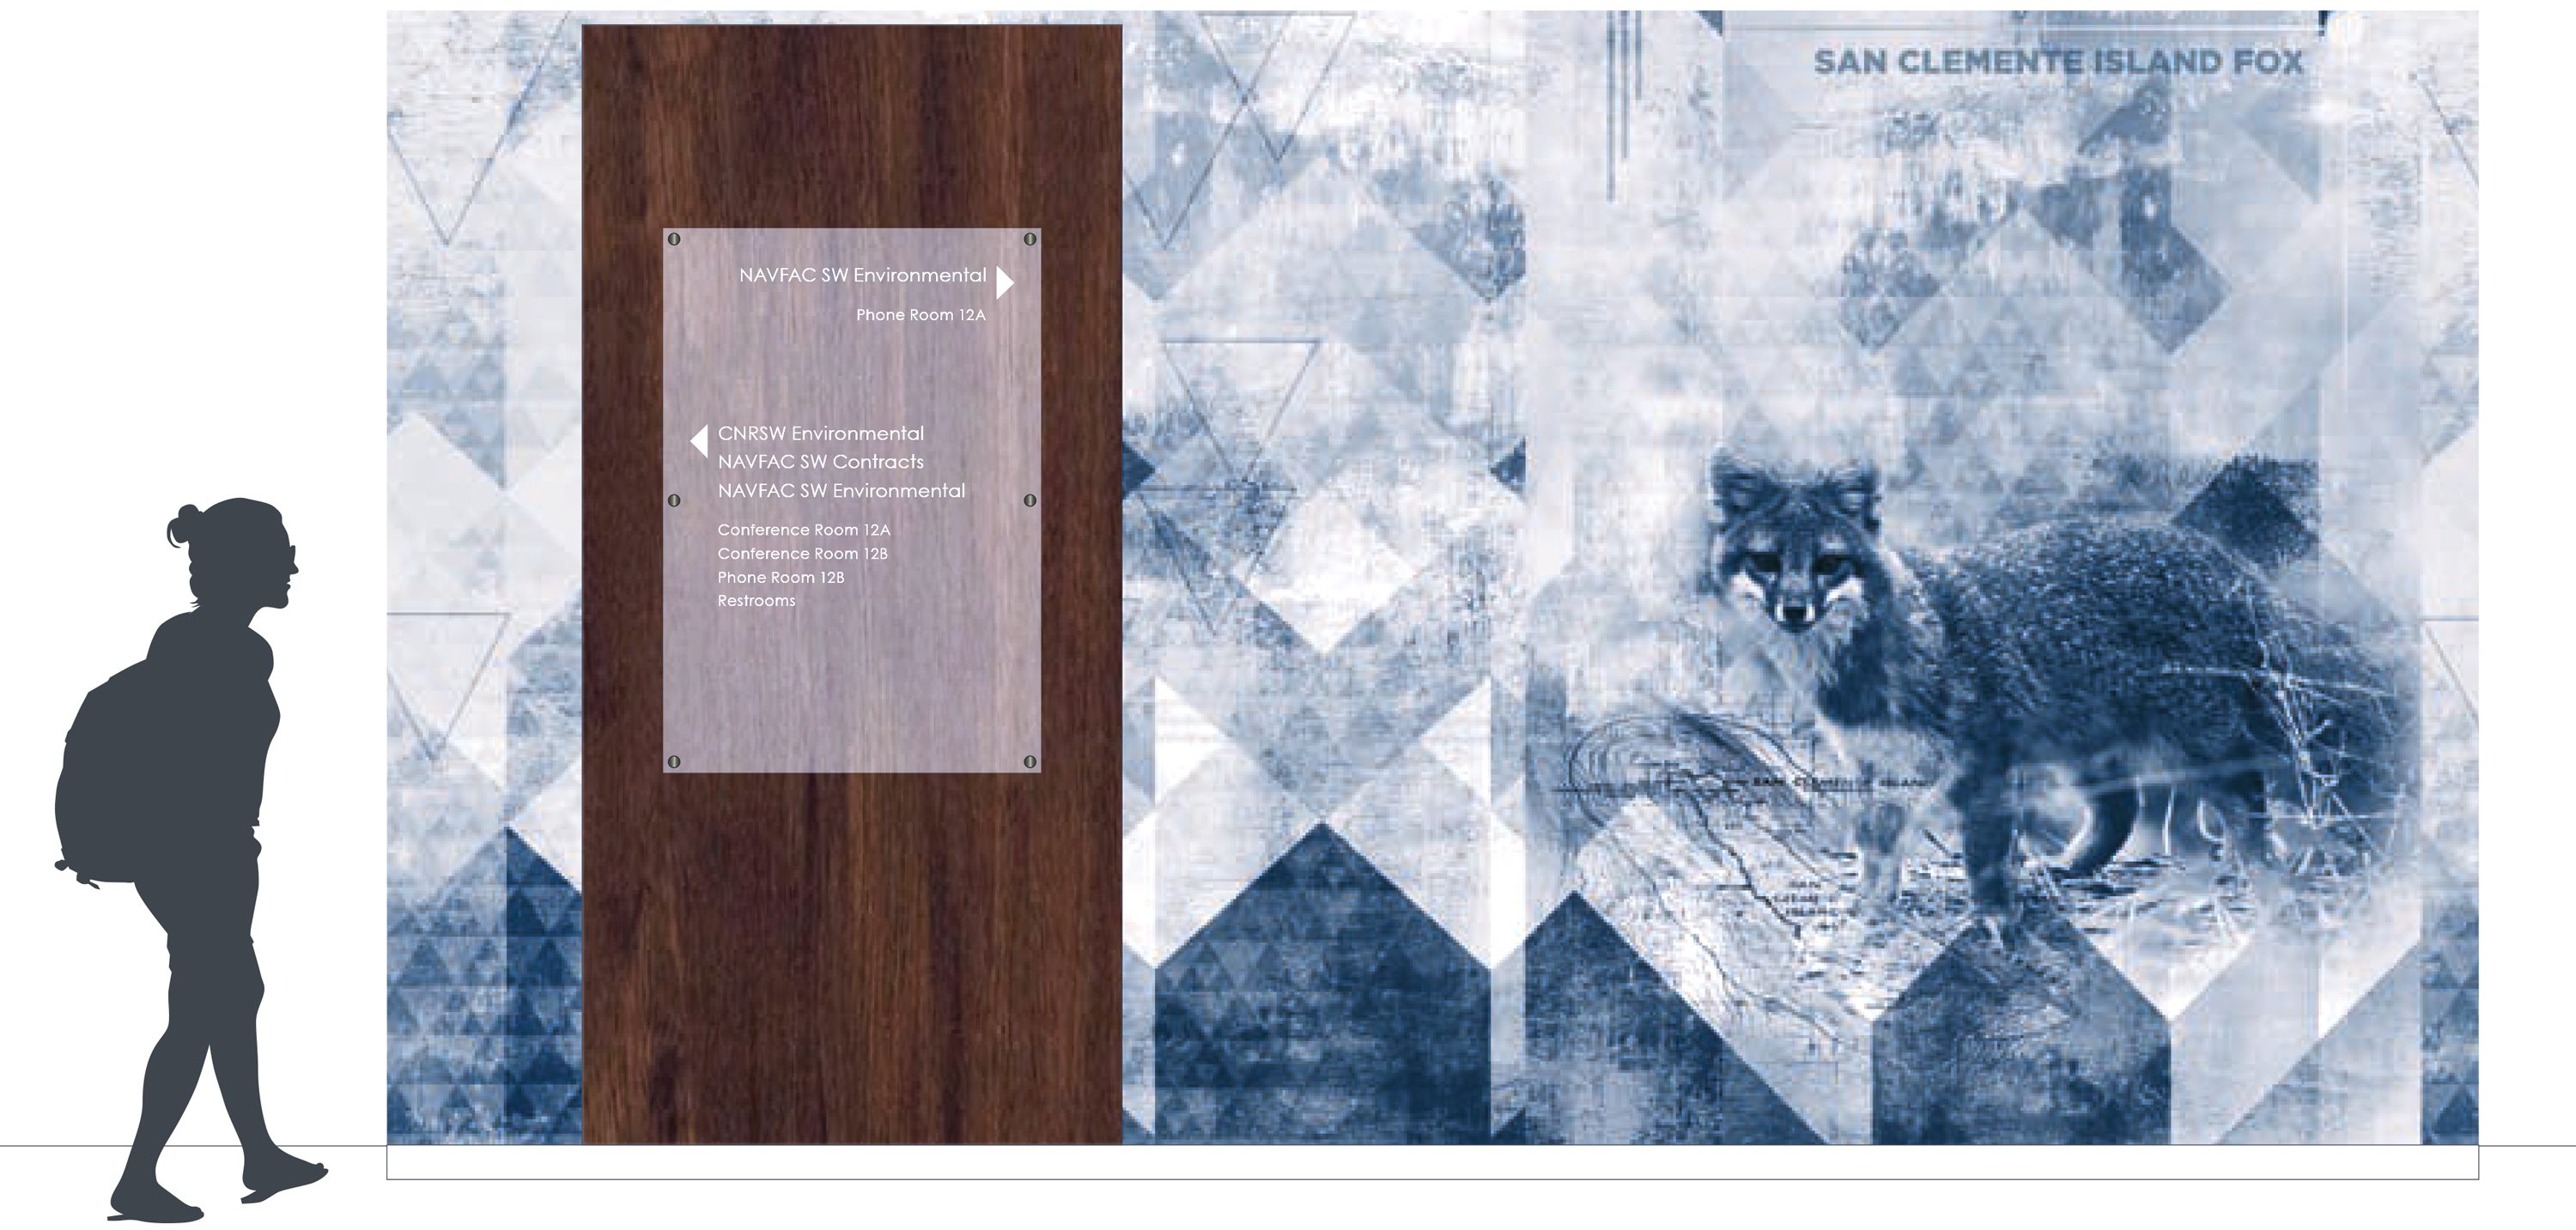 Amplify wall covering rendering of San Clemente Island Fox